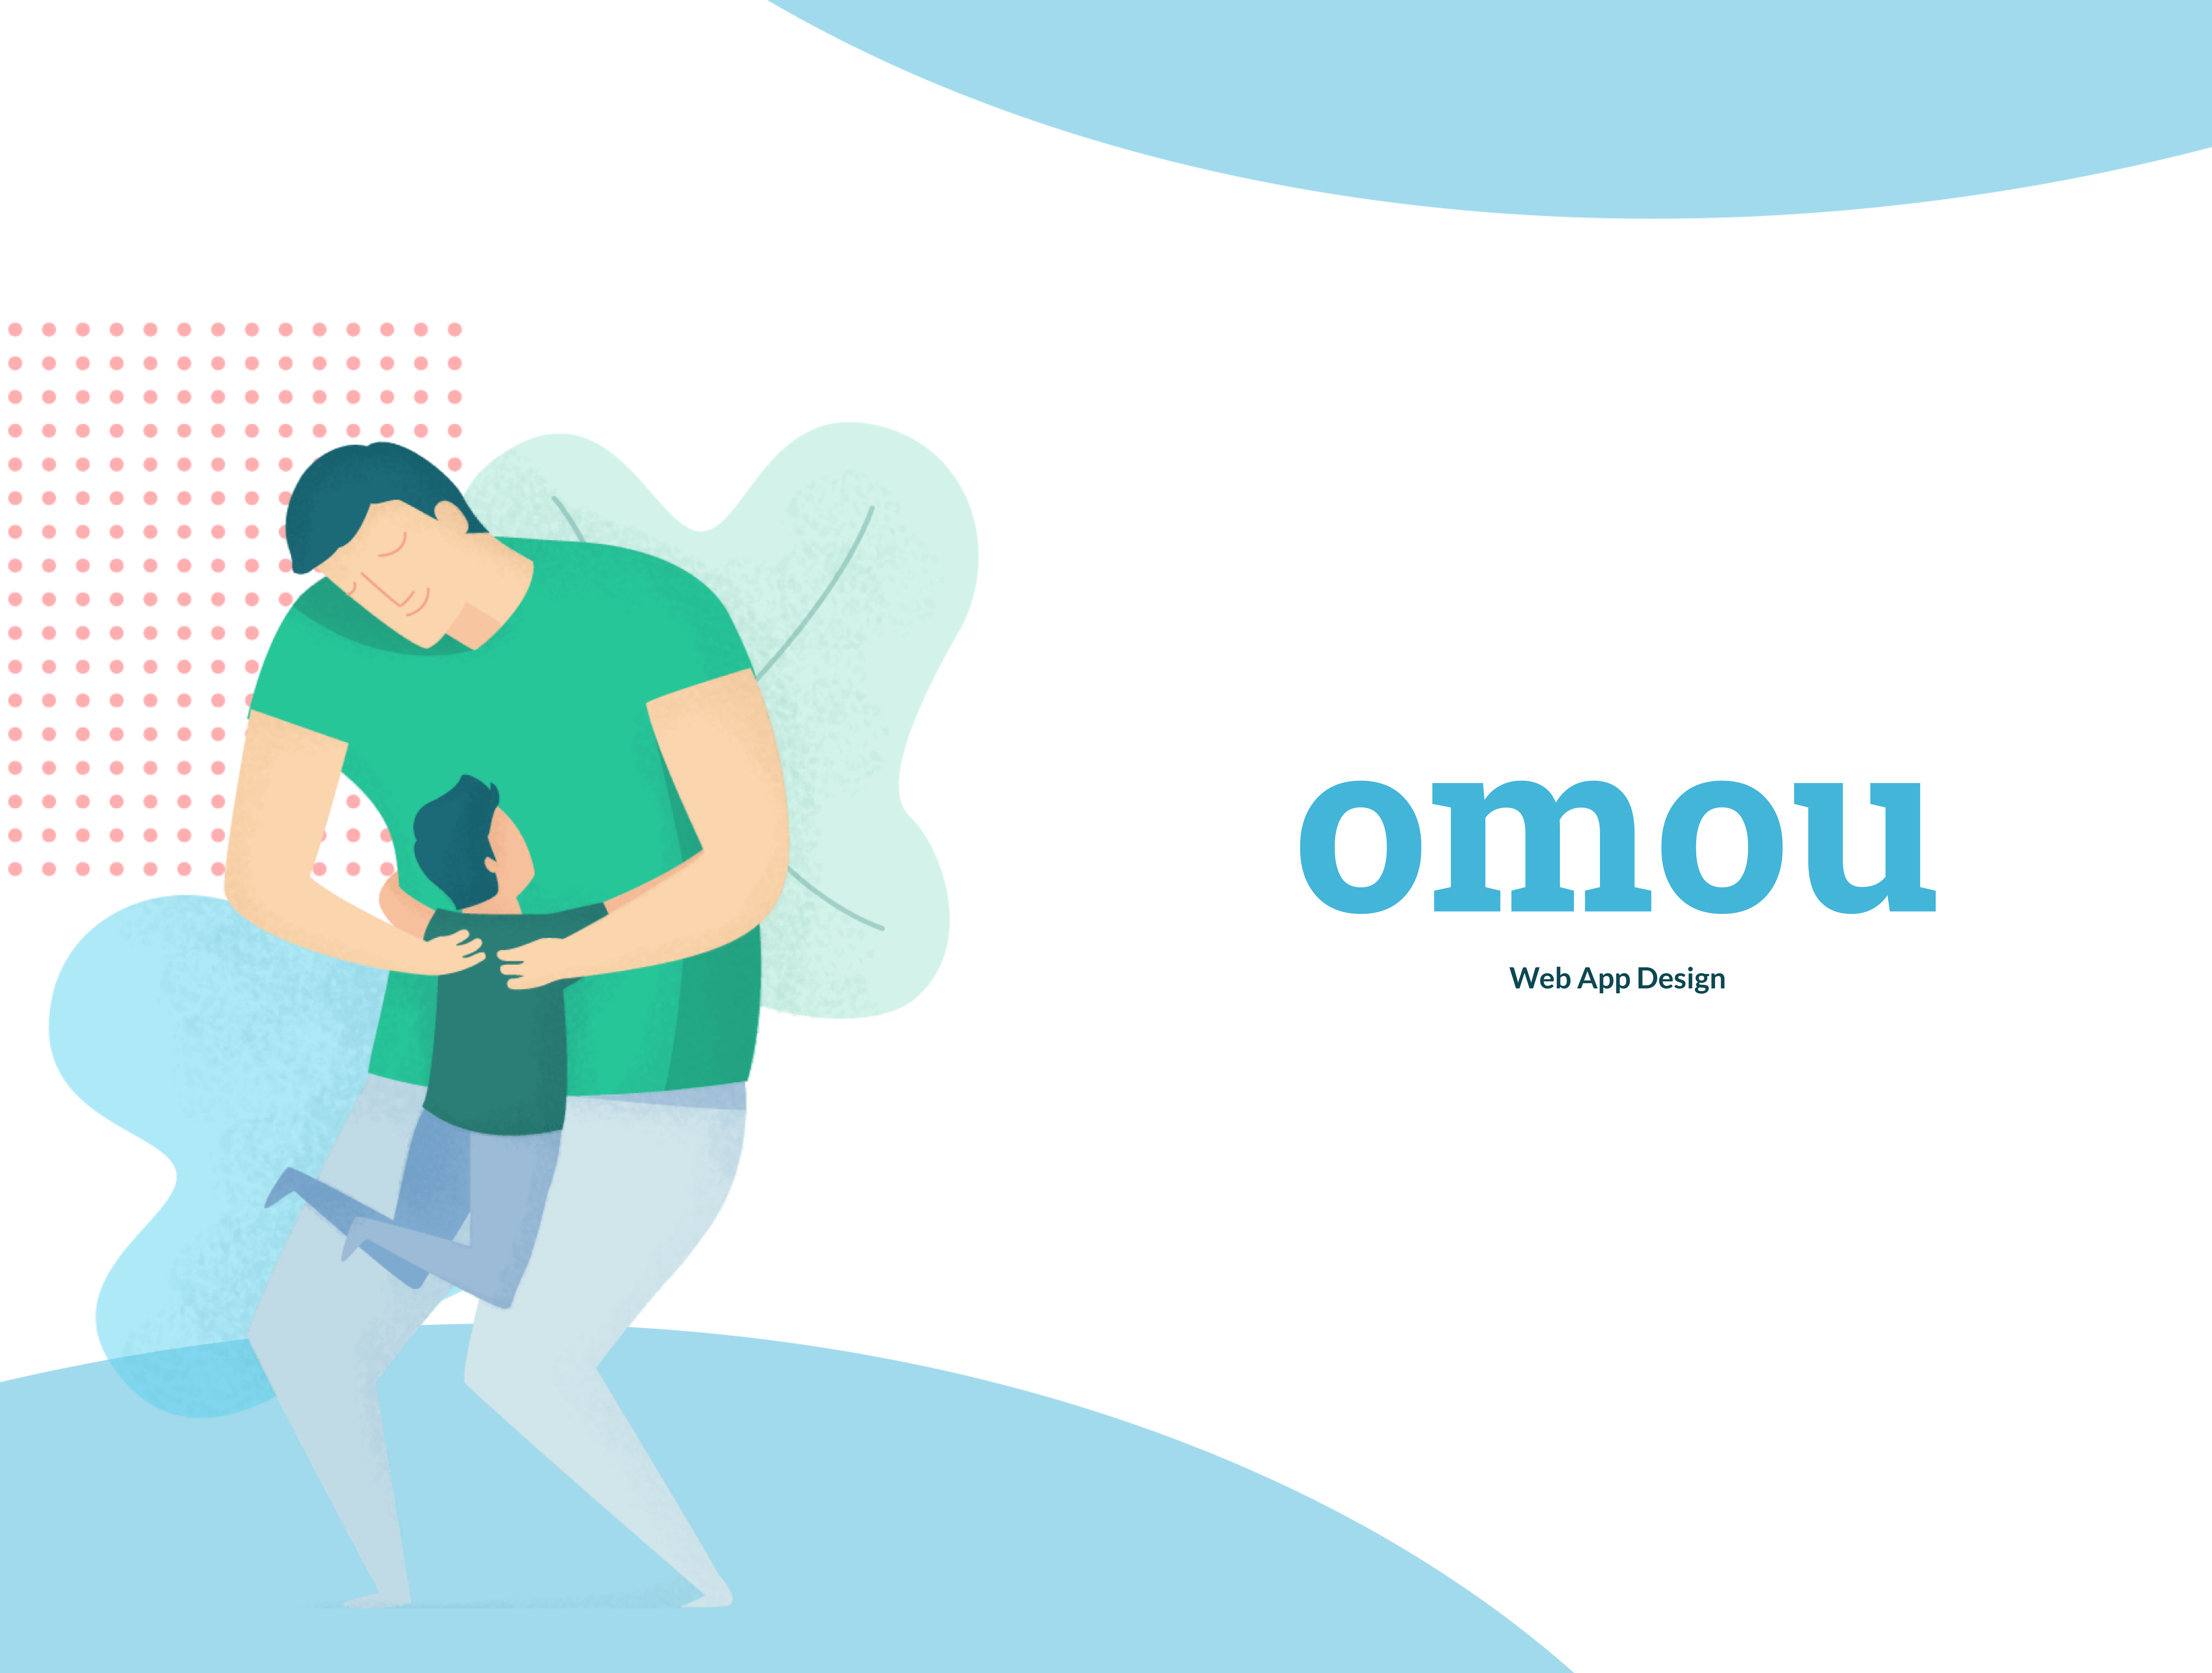 """Thumbnail for the Omou project featuring an abstract illustration of a parent embracing their child, the Omou logo and the project type """"Web App Design"""""""